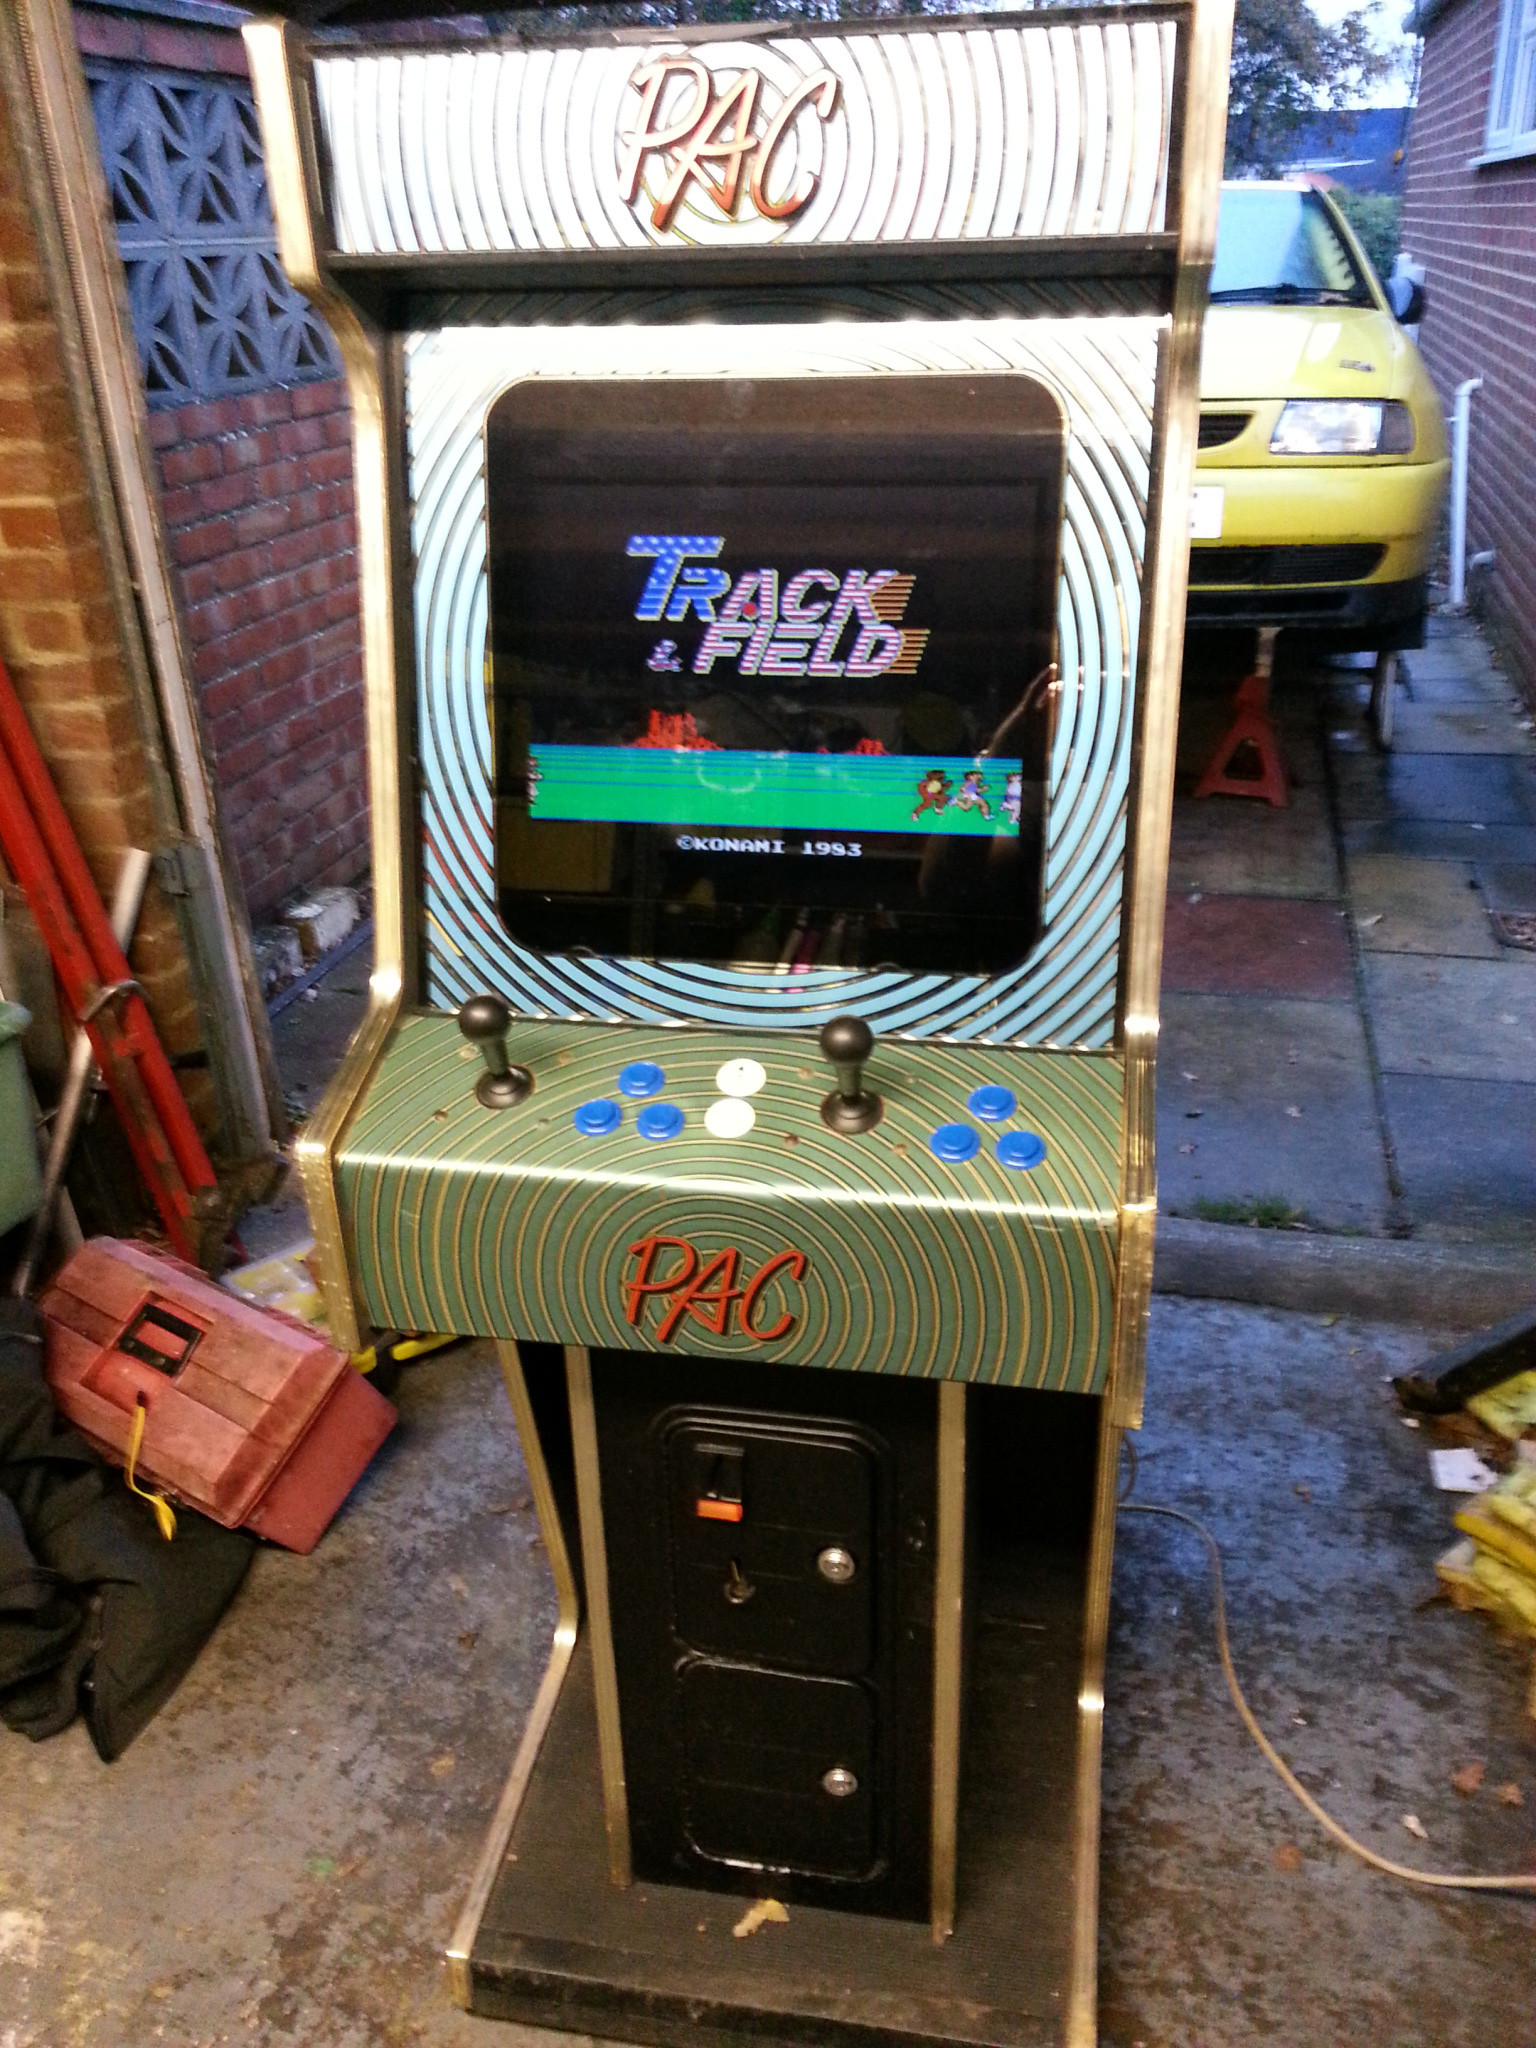 Best ideas about Mame Arcade Cabinet . Save or Pin Guest blog 6 MAME cabinet by Darren J Raspberry Pi Now.